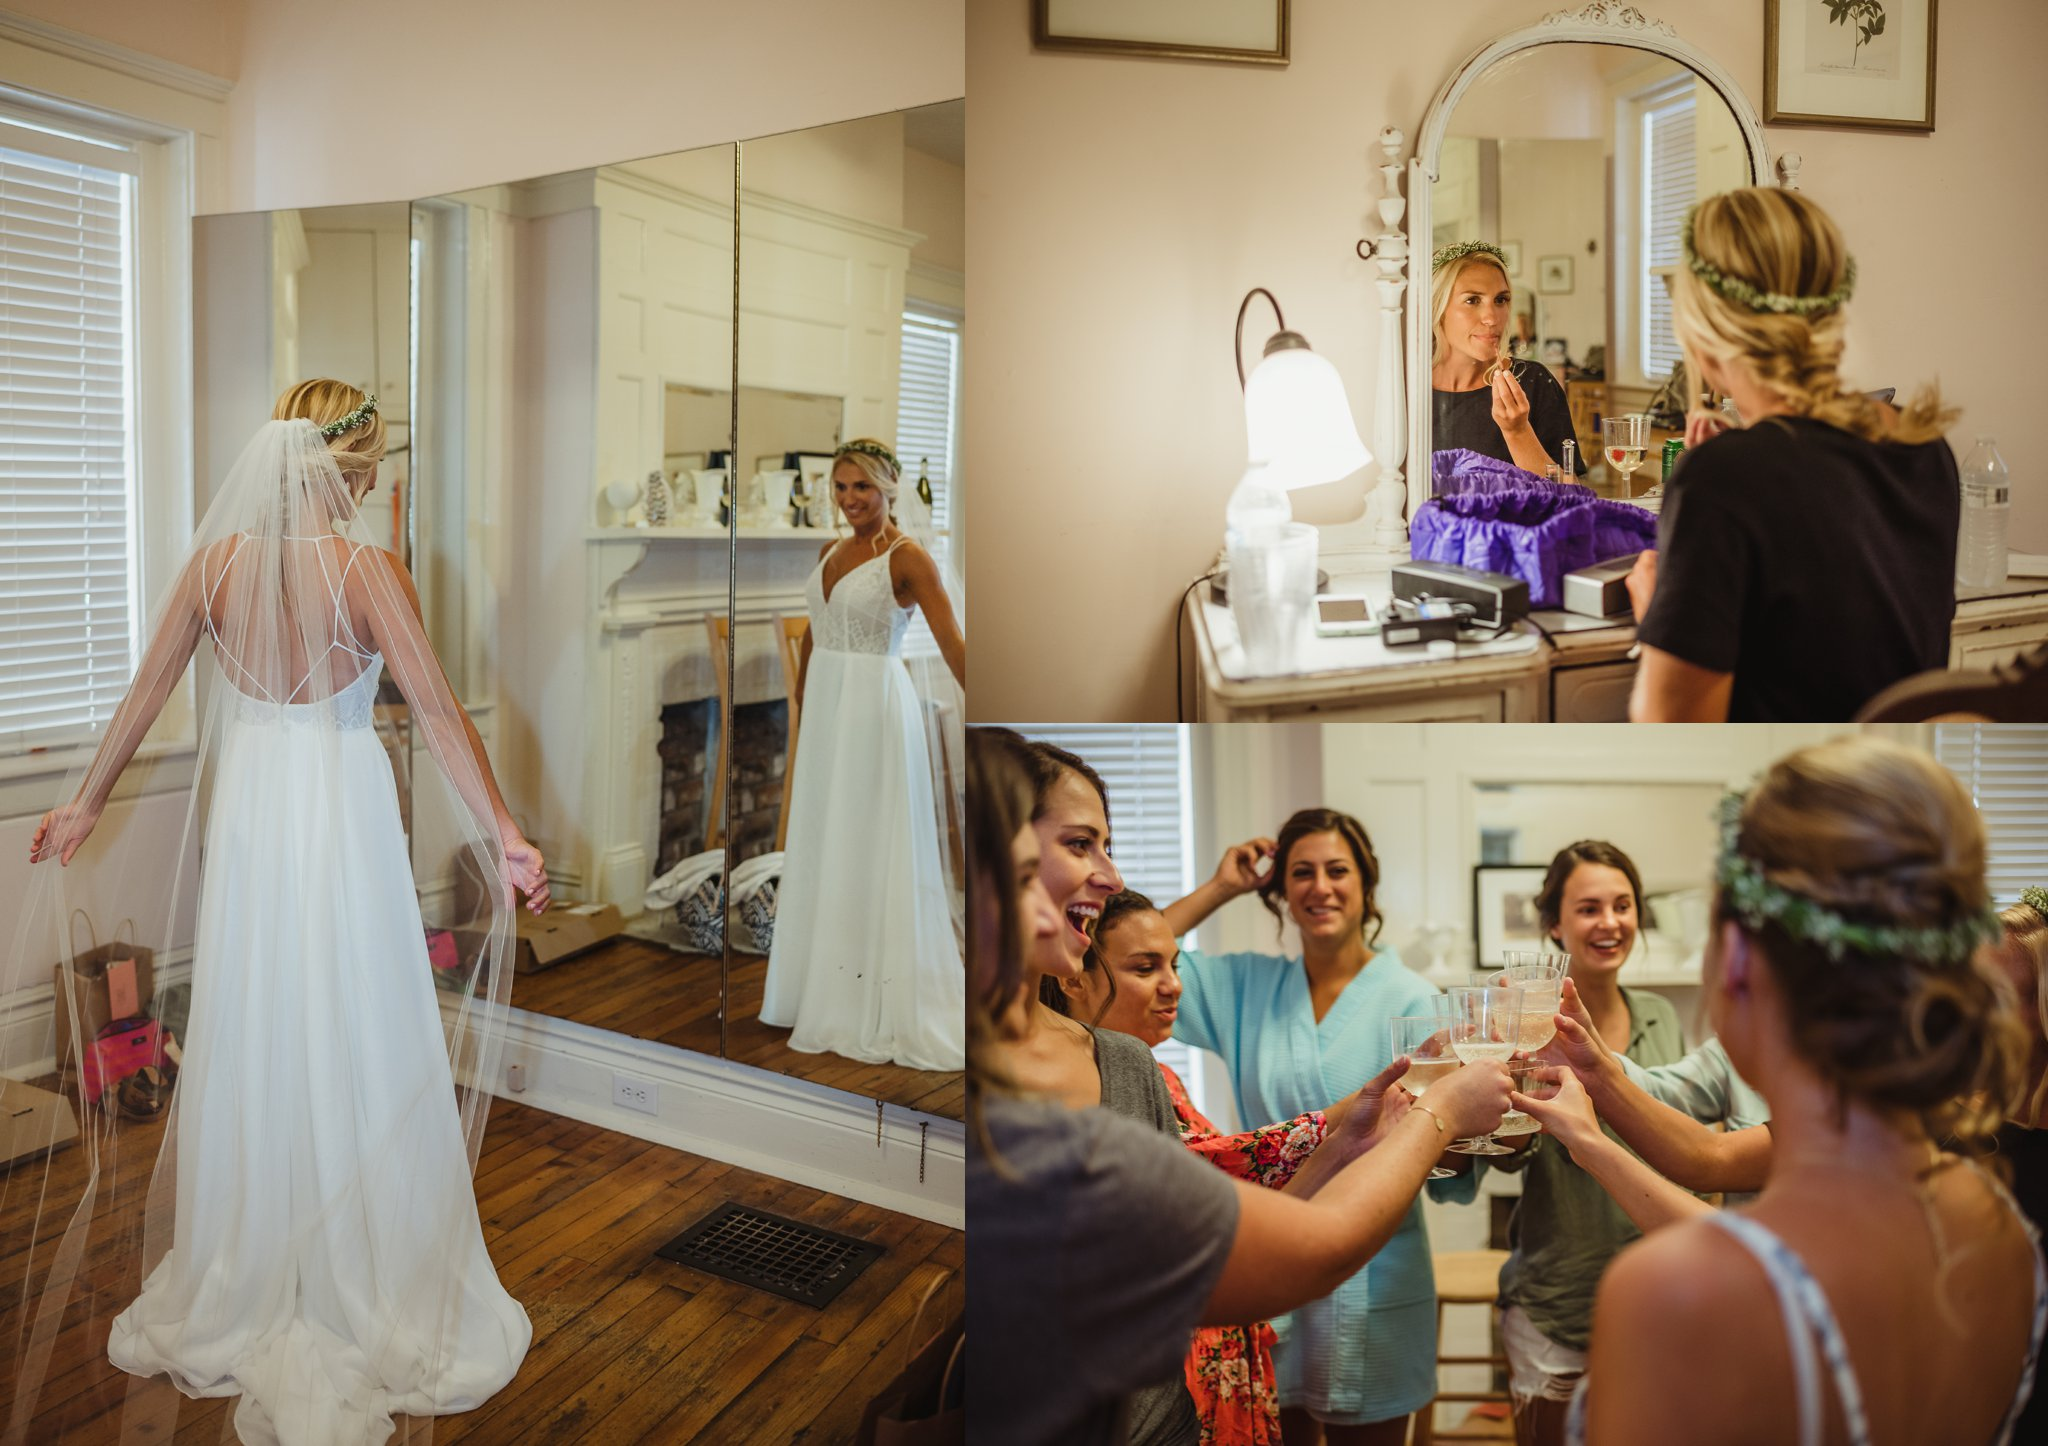 The bride gets ready with her bridesmaids before her wedding in Wilmington, NC, photos by Rose Trail Images.